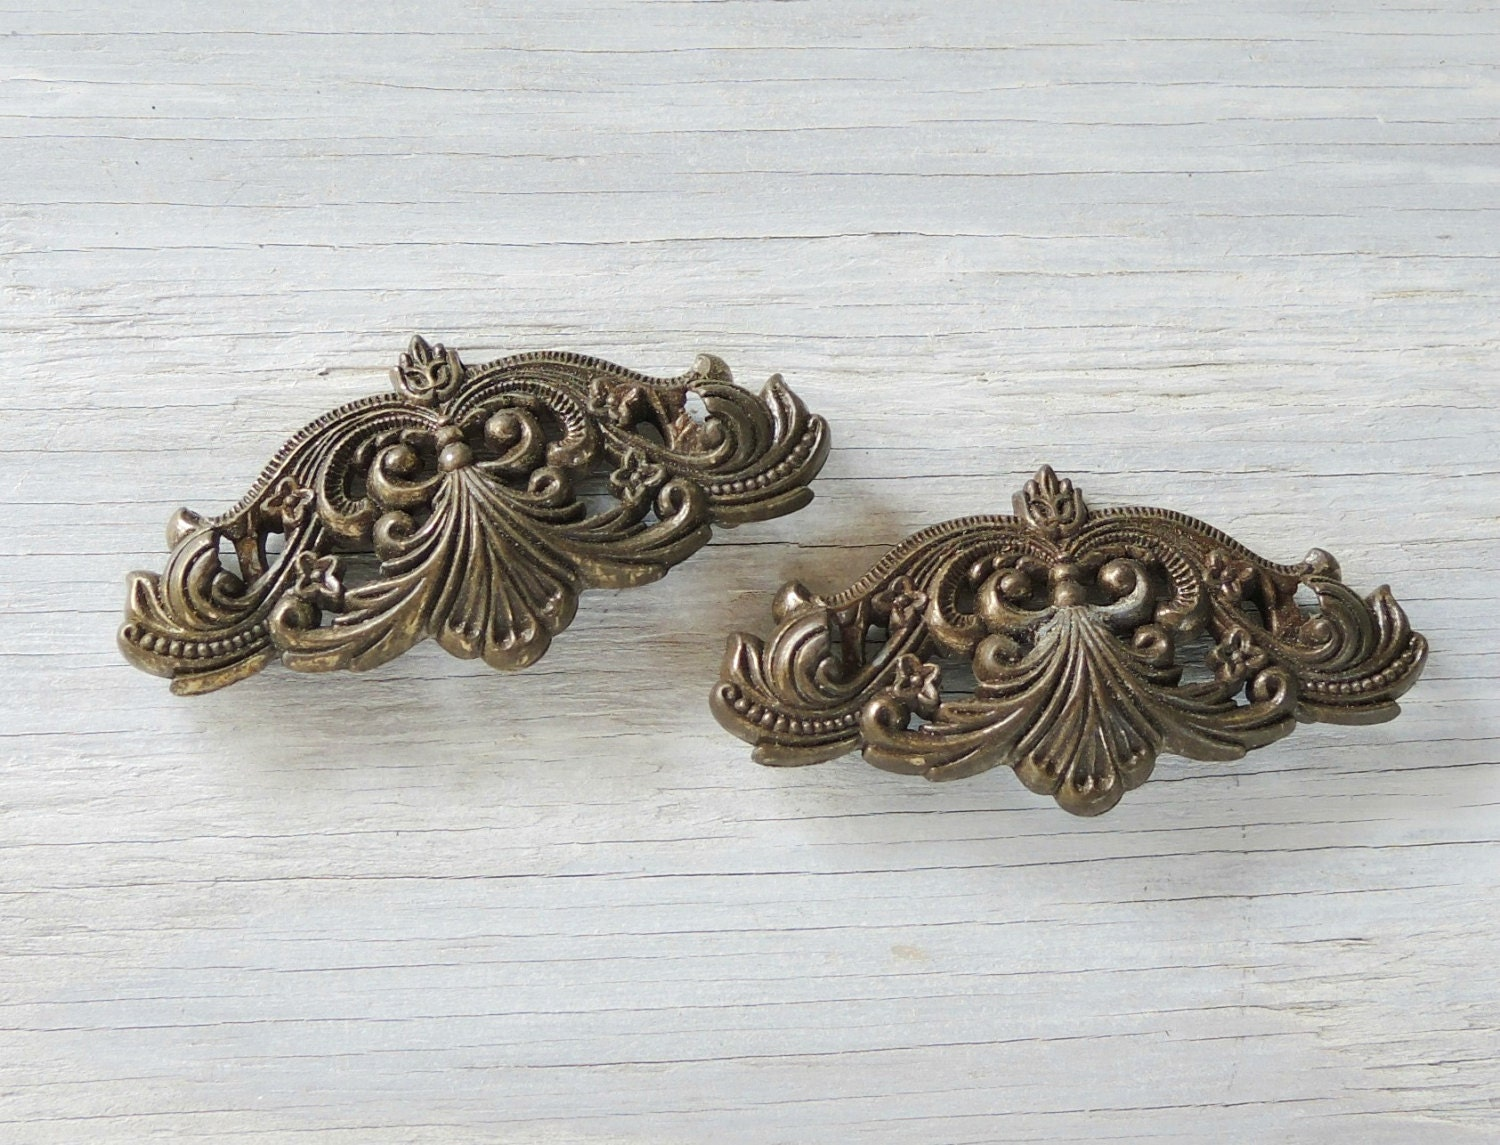 2 salvaged furniture hardware embellishment industrial for Rustic home decor suppliers